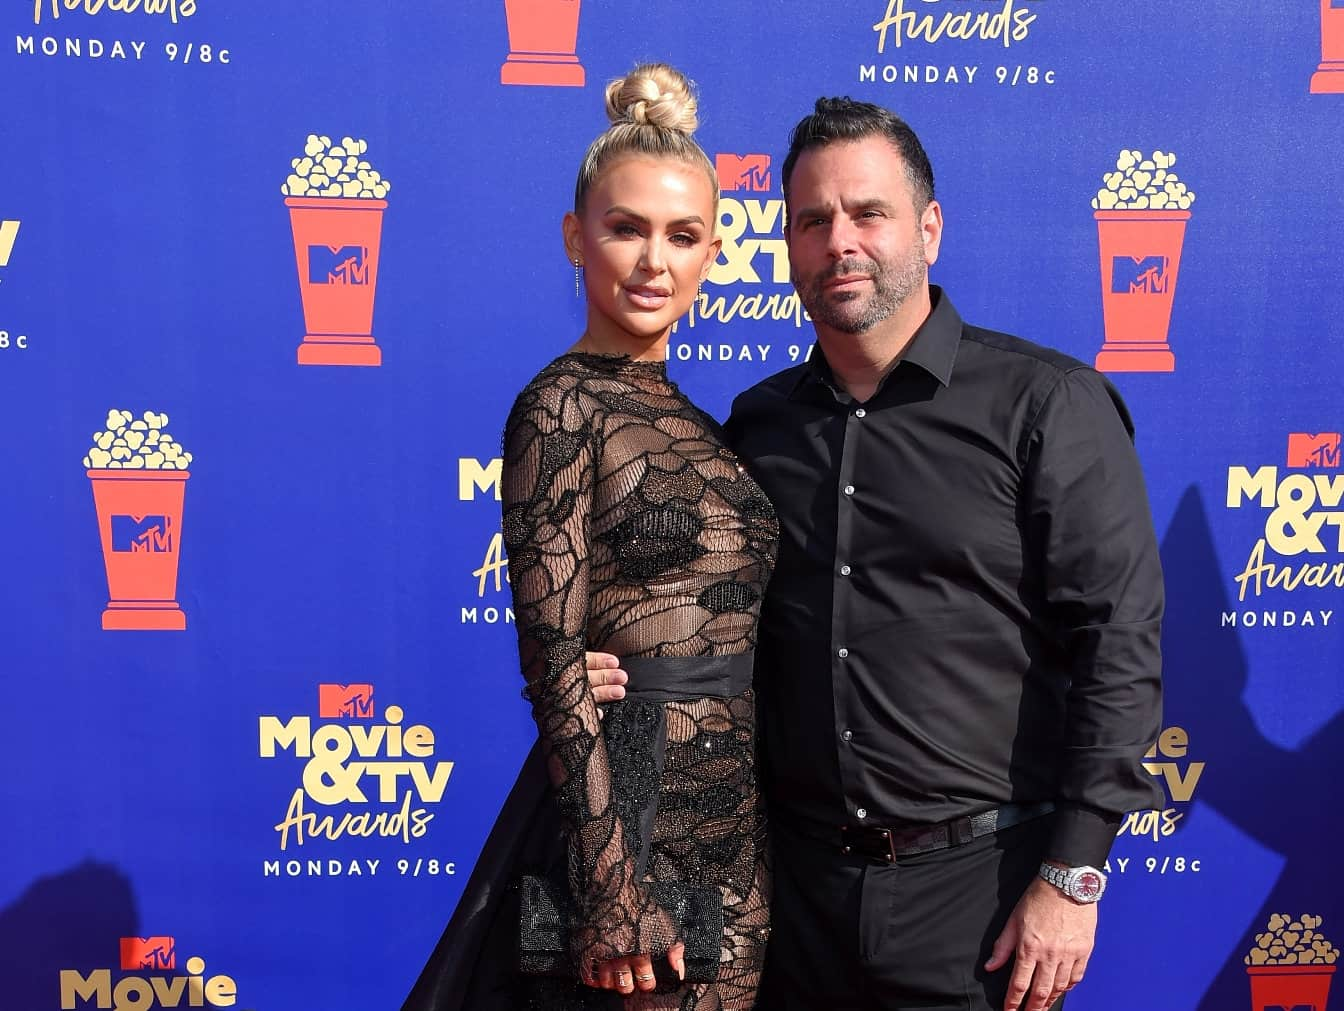 Vanderpump Rules' Lala Kent Reveals When She and Randall Emmett Will Vanderpump Rules' Lala Kent Reveals When She and Randall Emmett Will Wed and Plans for Kids, Plus She Donates to Front Line Workers and Names Her RHOBH Style Icon